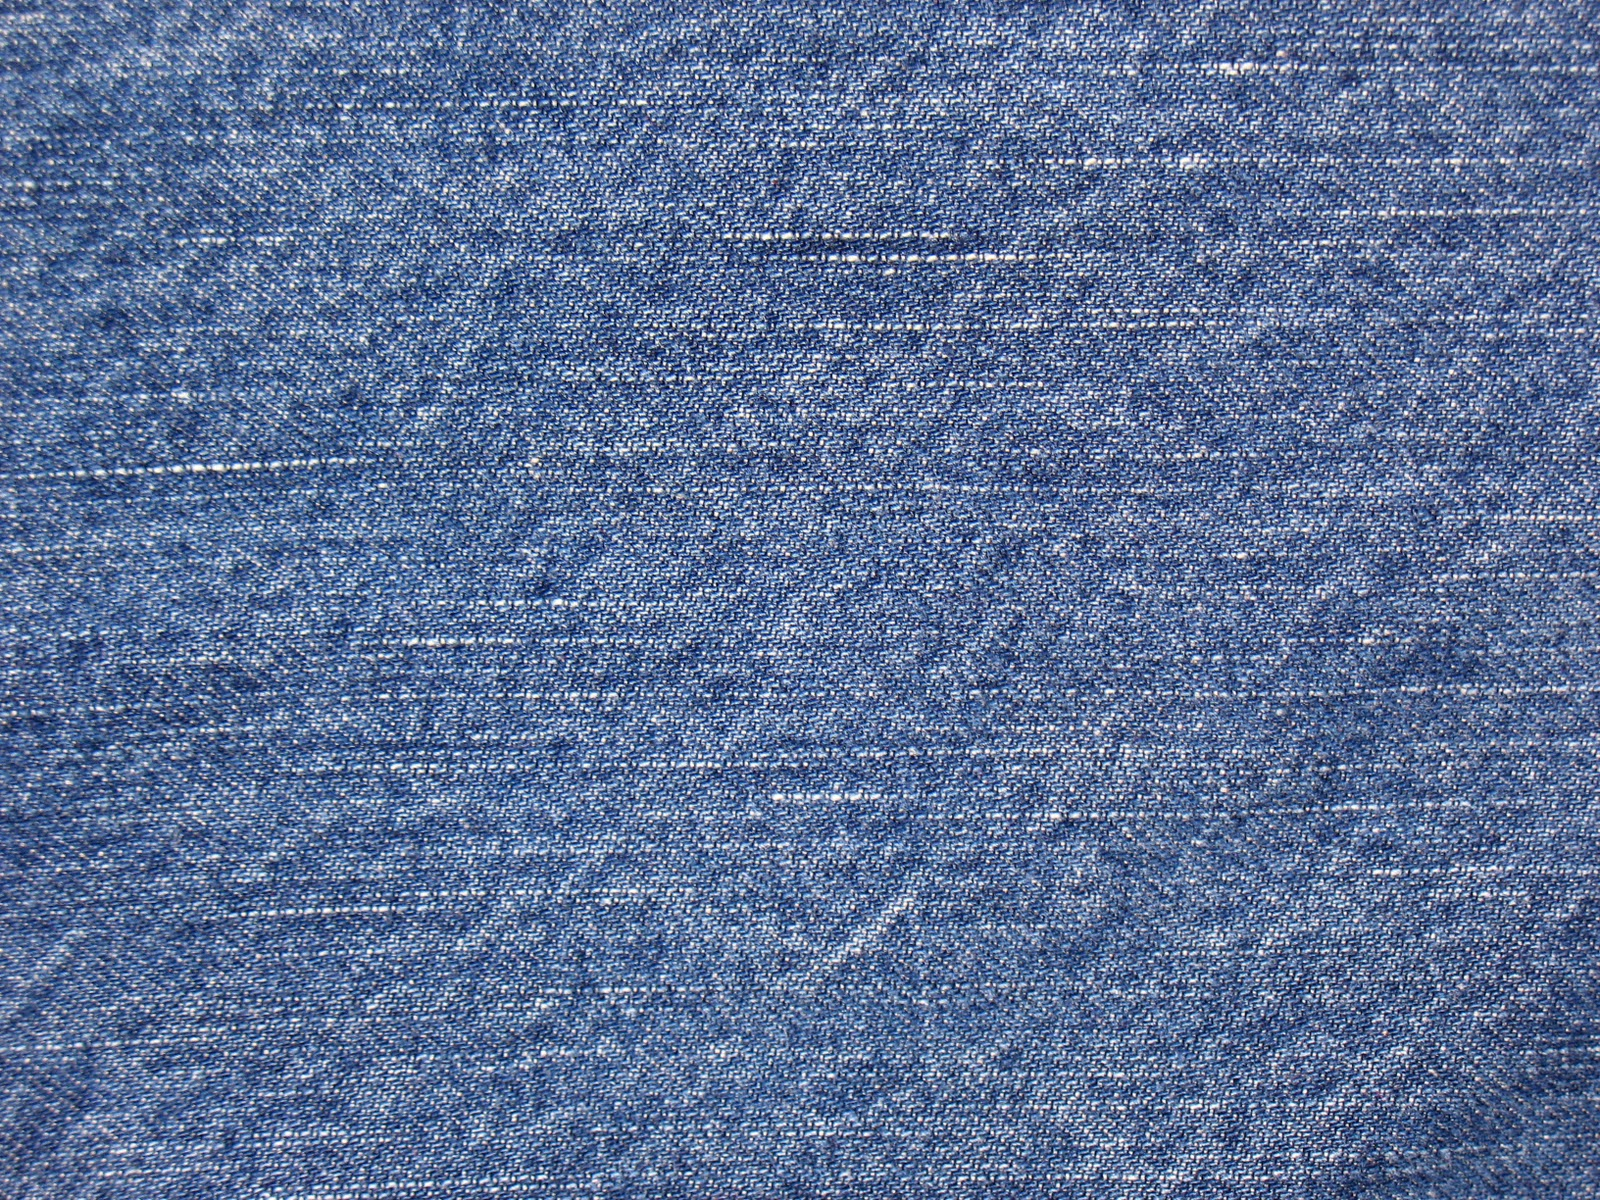 Texture blue jeans cloth download photo background jeans  blue jeans texture background